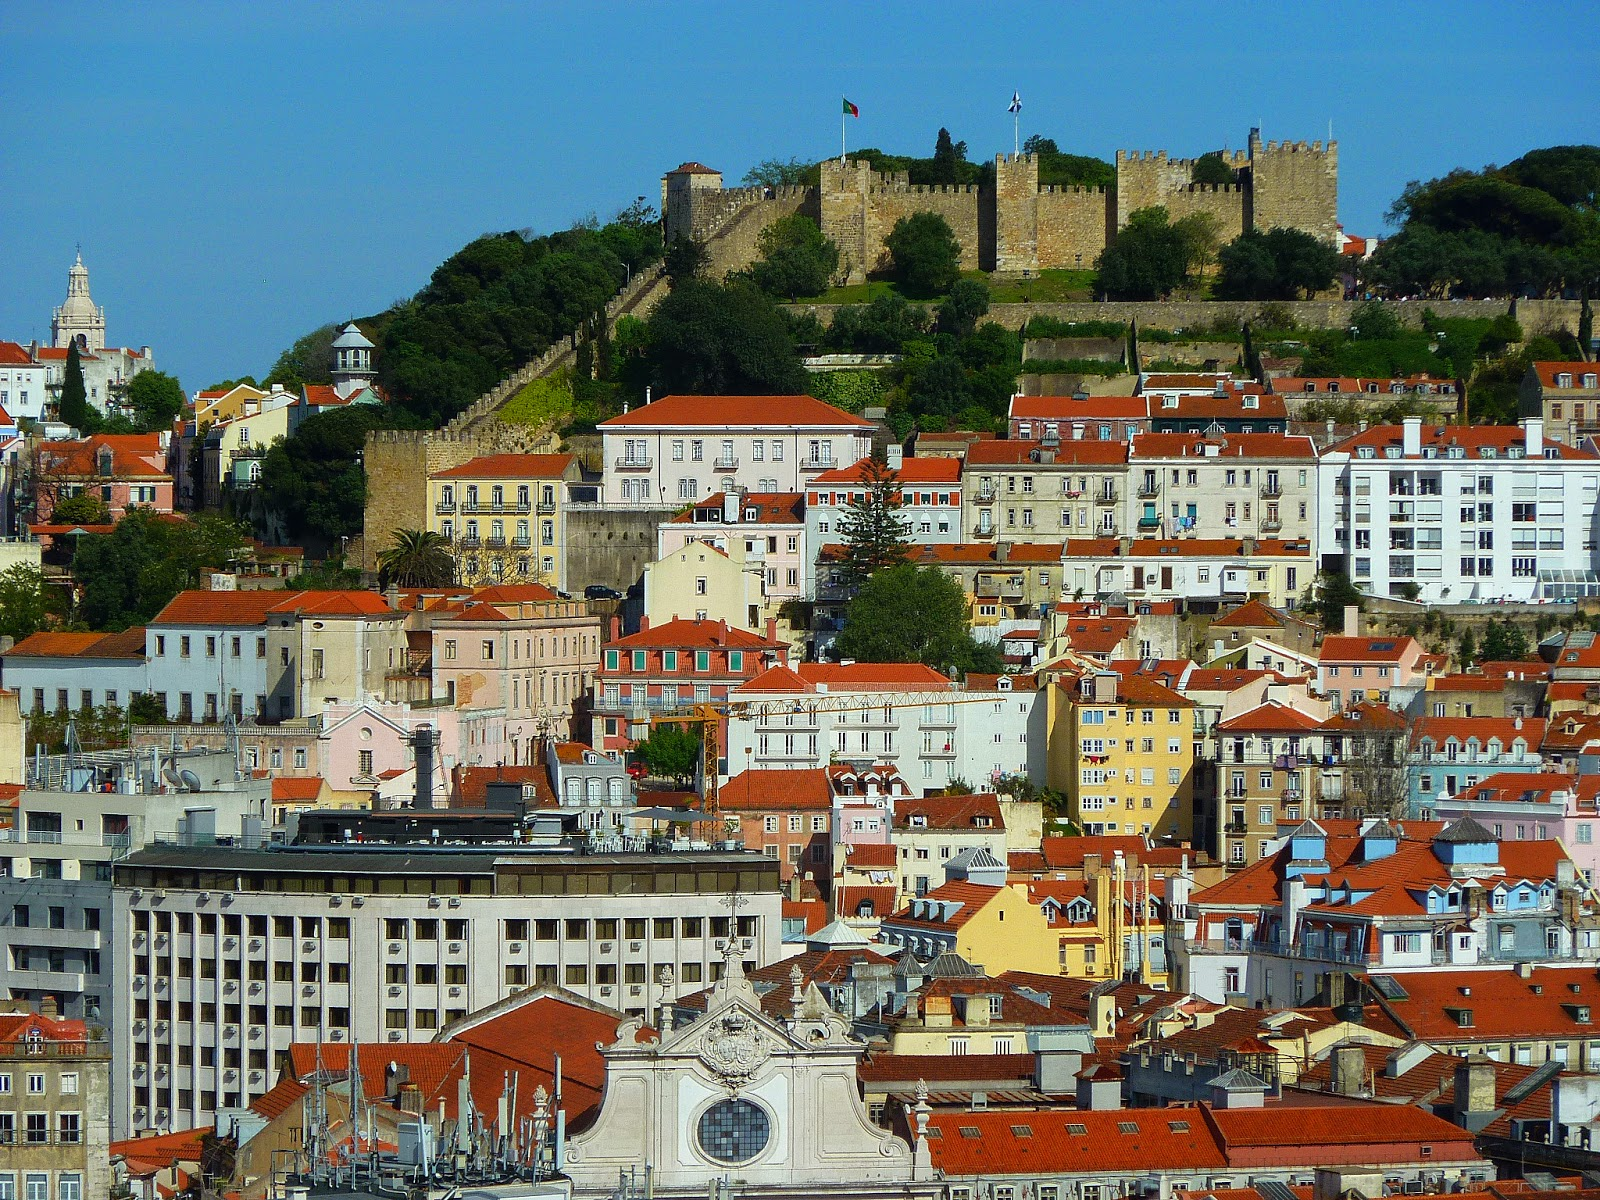 Visit the Lisbon on our Amazing Alentejo Guided Bike Tour